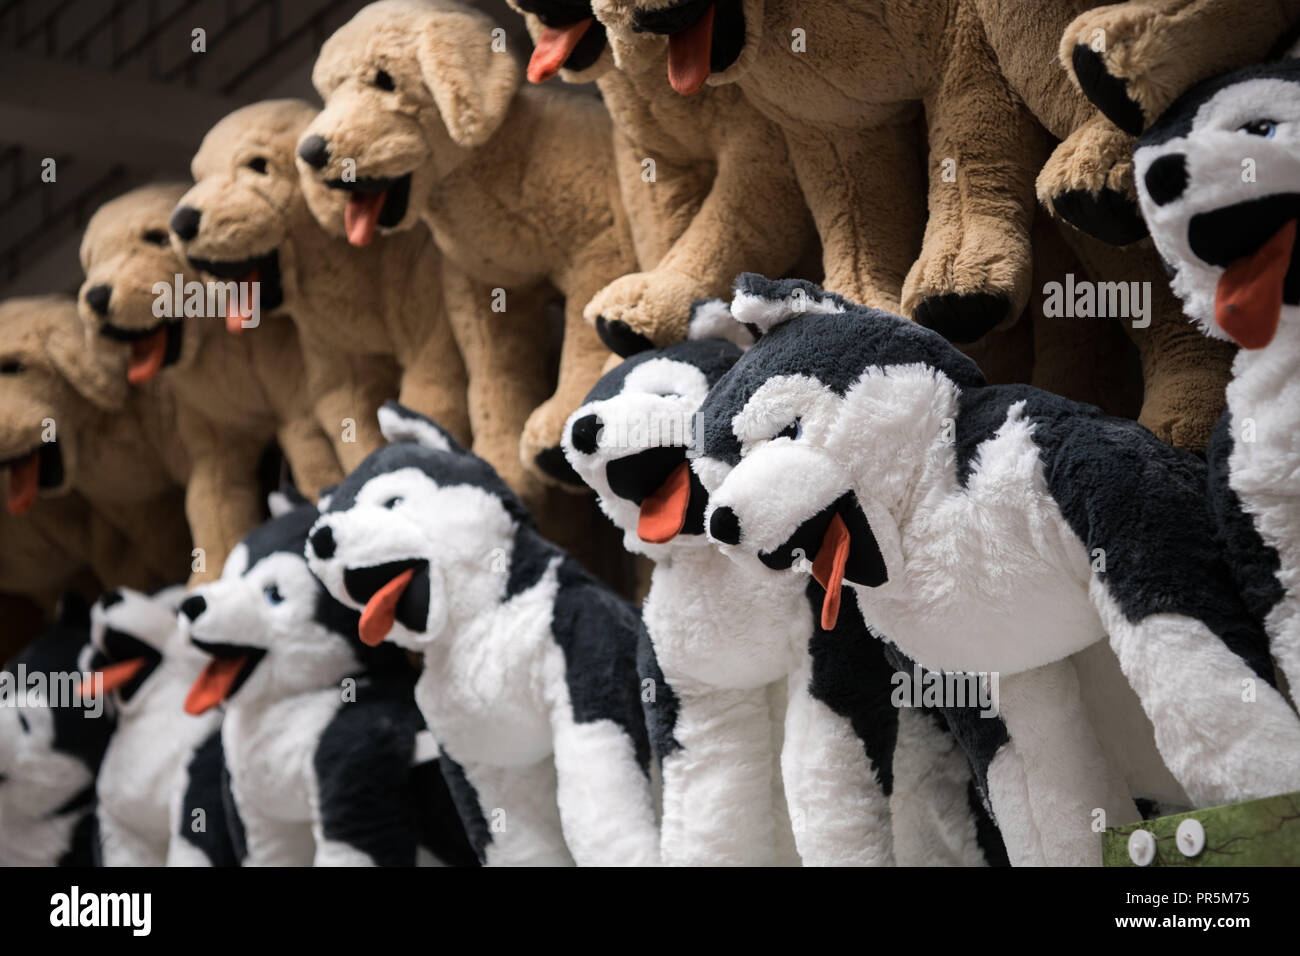 Beanie Babies Stock Photos & Beanie Babies Stock Images - Alamy